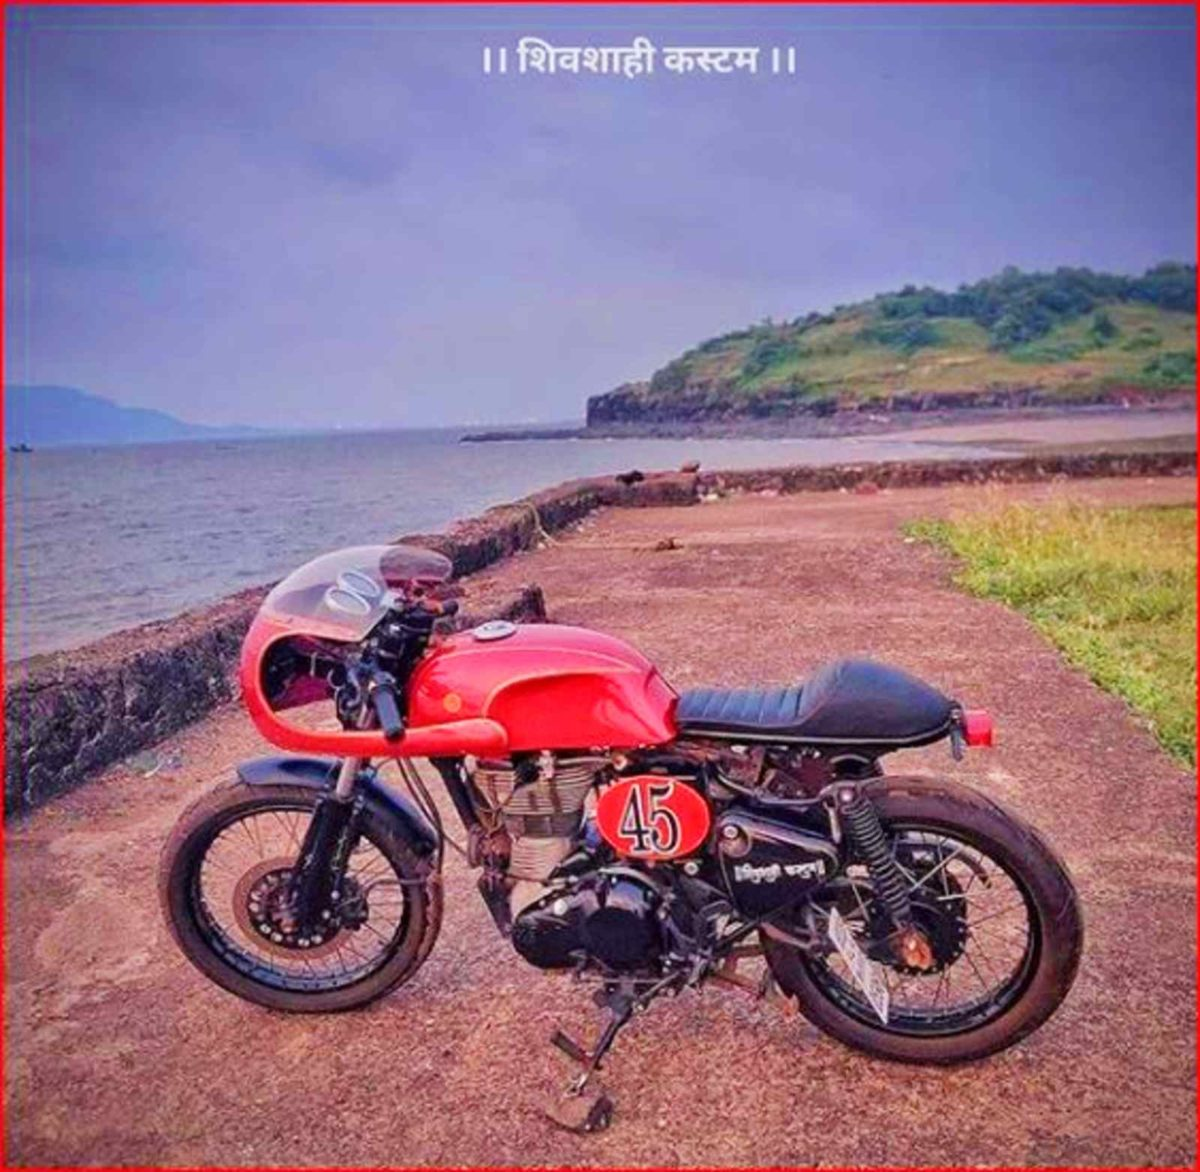 Customized Royal Enfield Classic 350